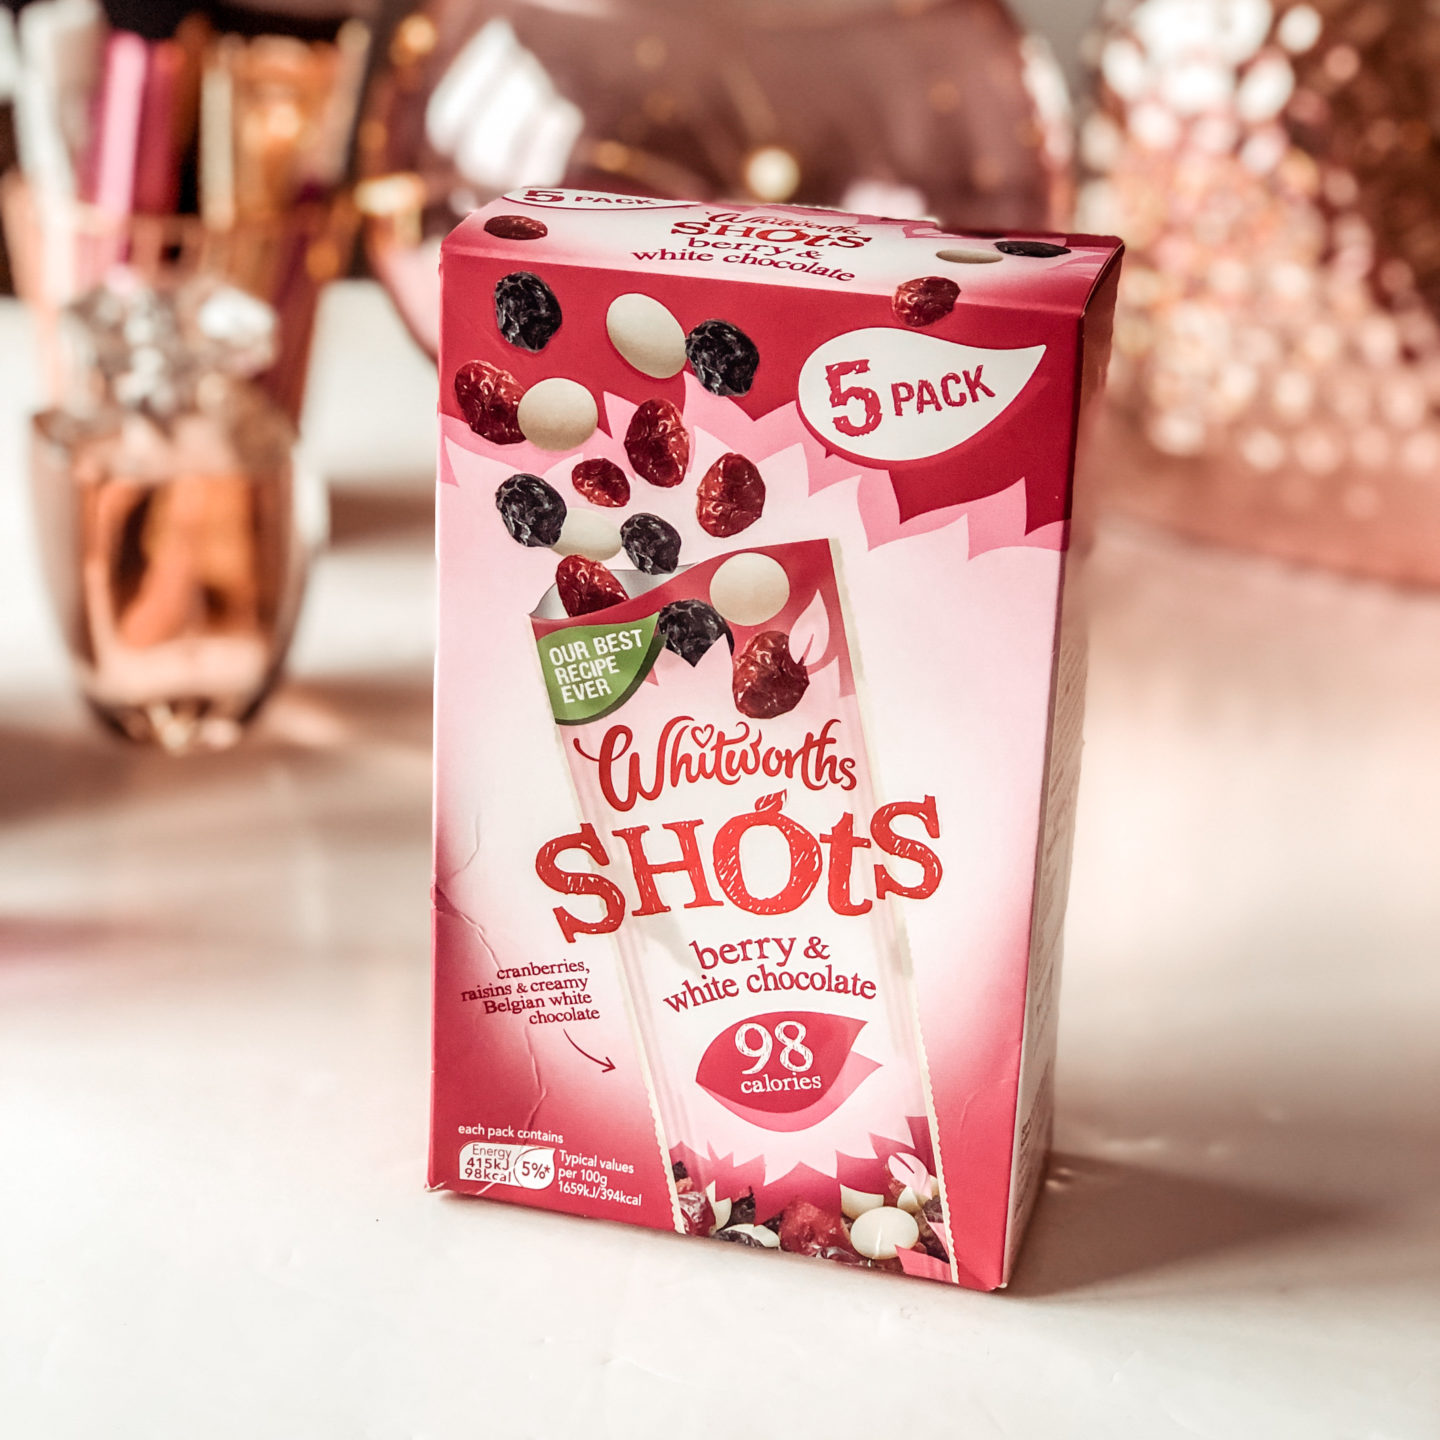 Whitworths Shots Berry & White Chocolate